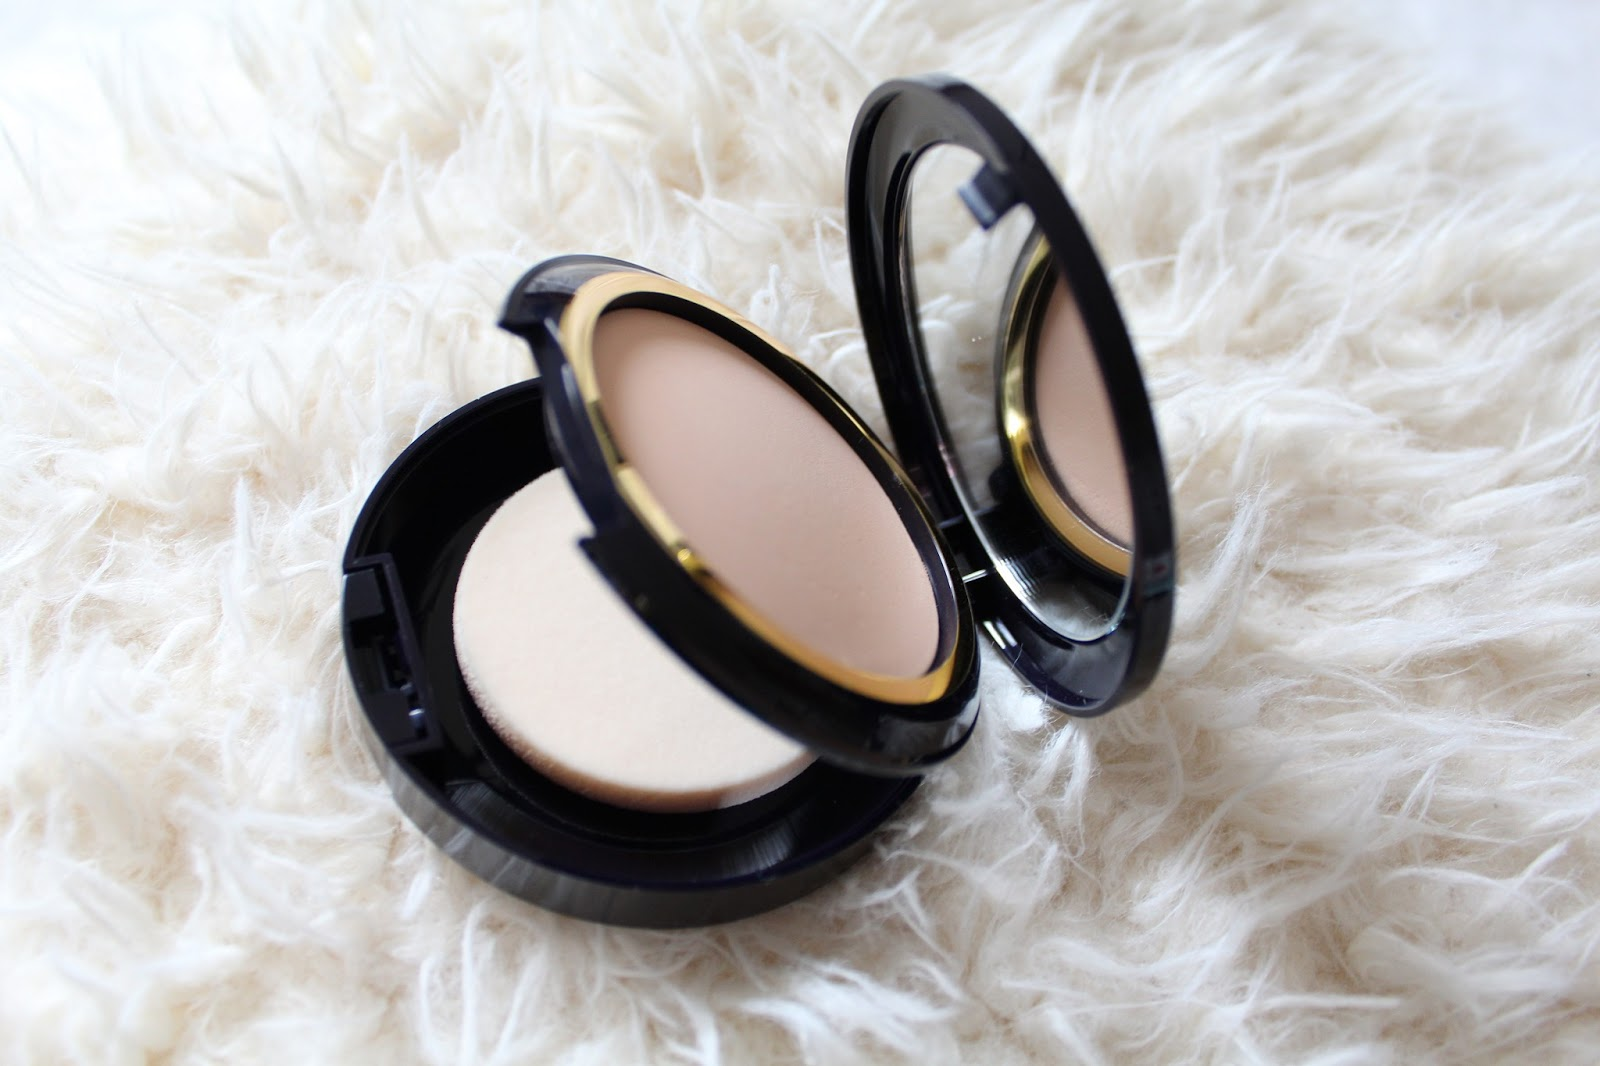 Estee Lauder Invisible Powder